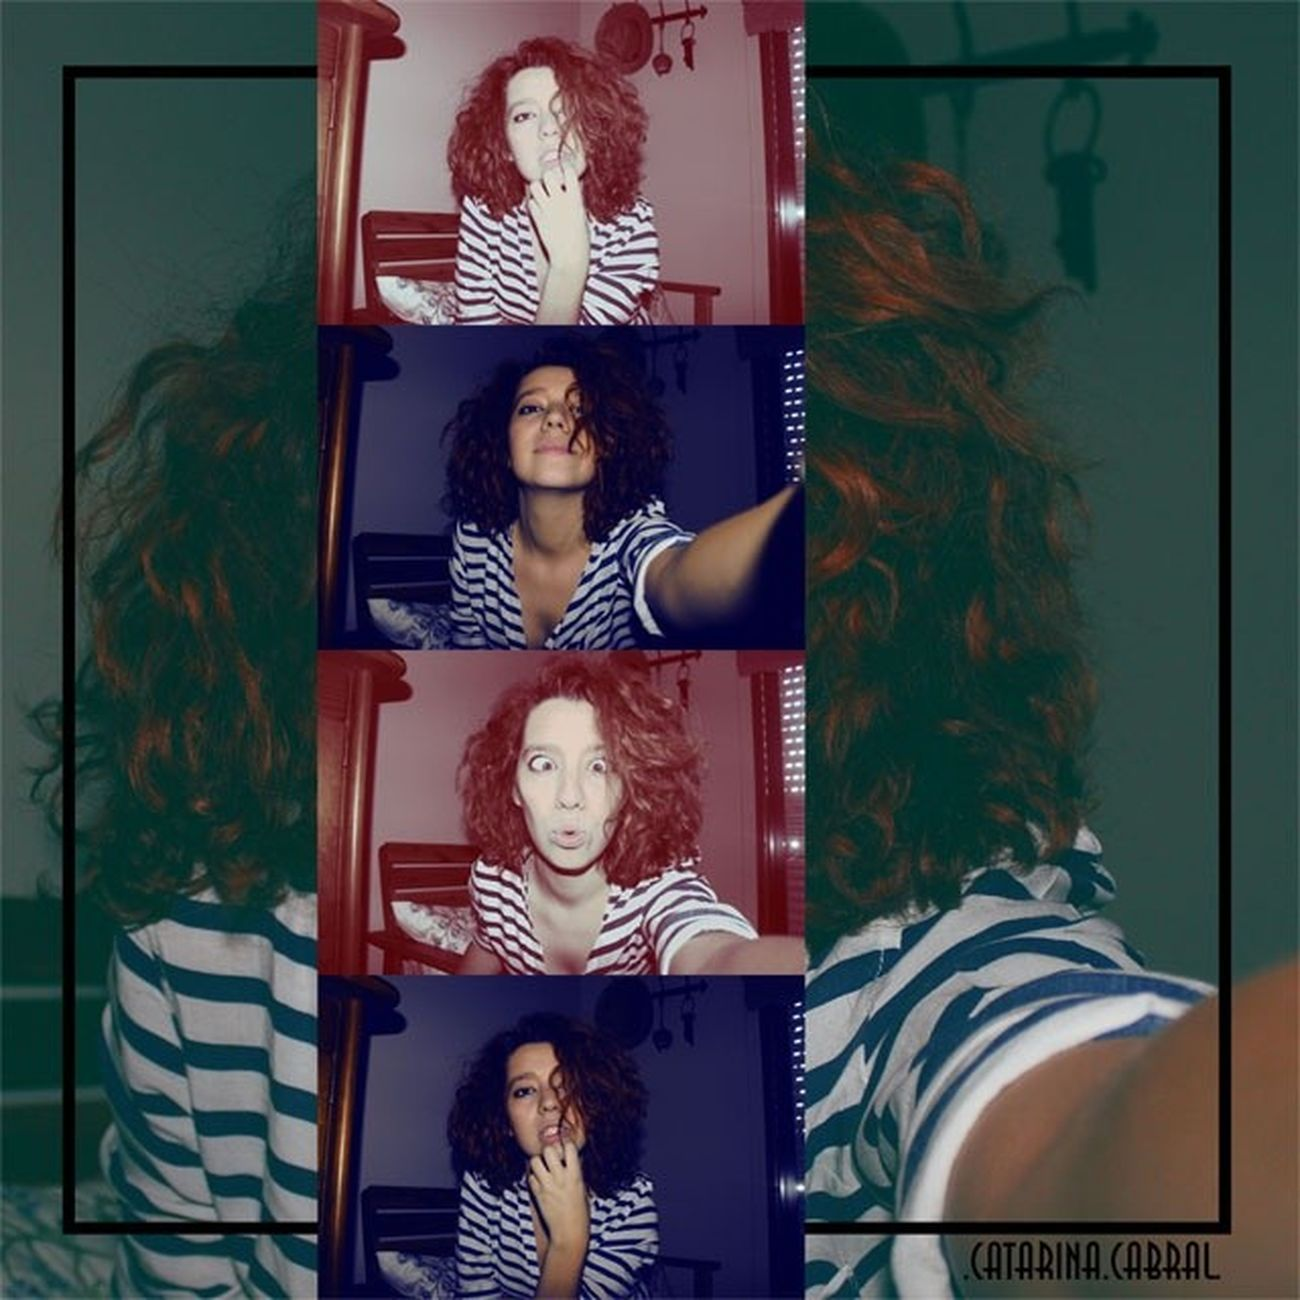 SelfiesOfTheDay Selfie PlayingWithColorsOnPhotoshop Instaphoto InstaSelfie stripes ImageEdition